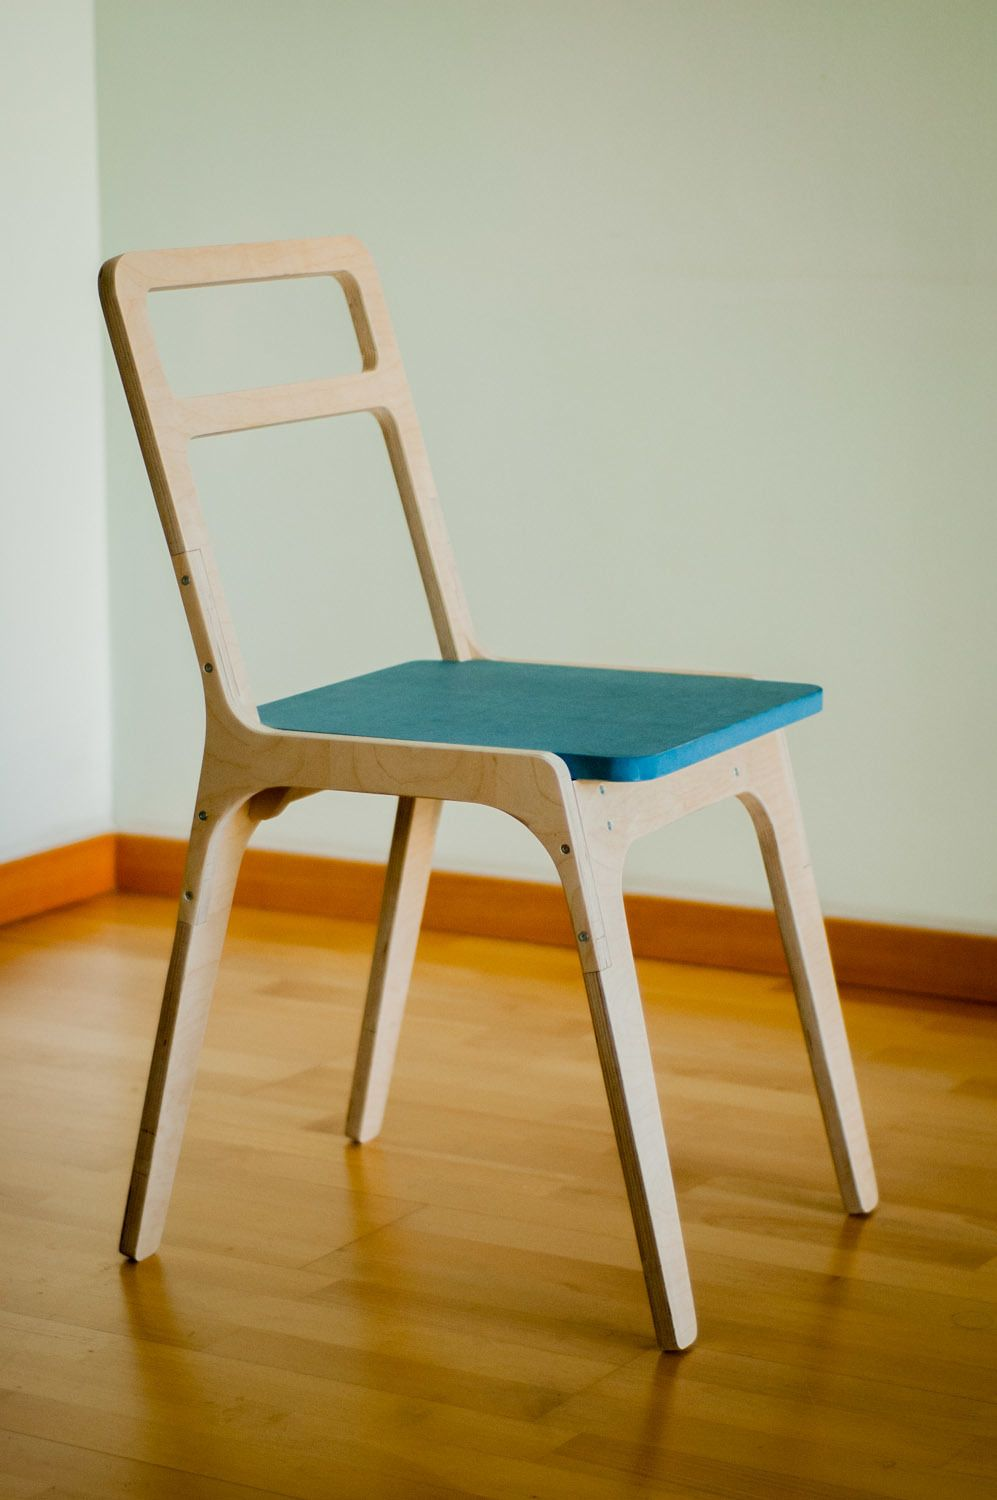 Beau Opendesk   Slim Chair 💠Chair Design💠Ideas 💠More Pins Like This At  FOSTERGINGER @ Pinterest💠